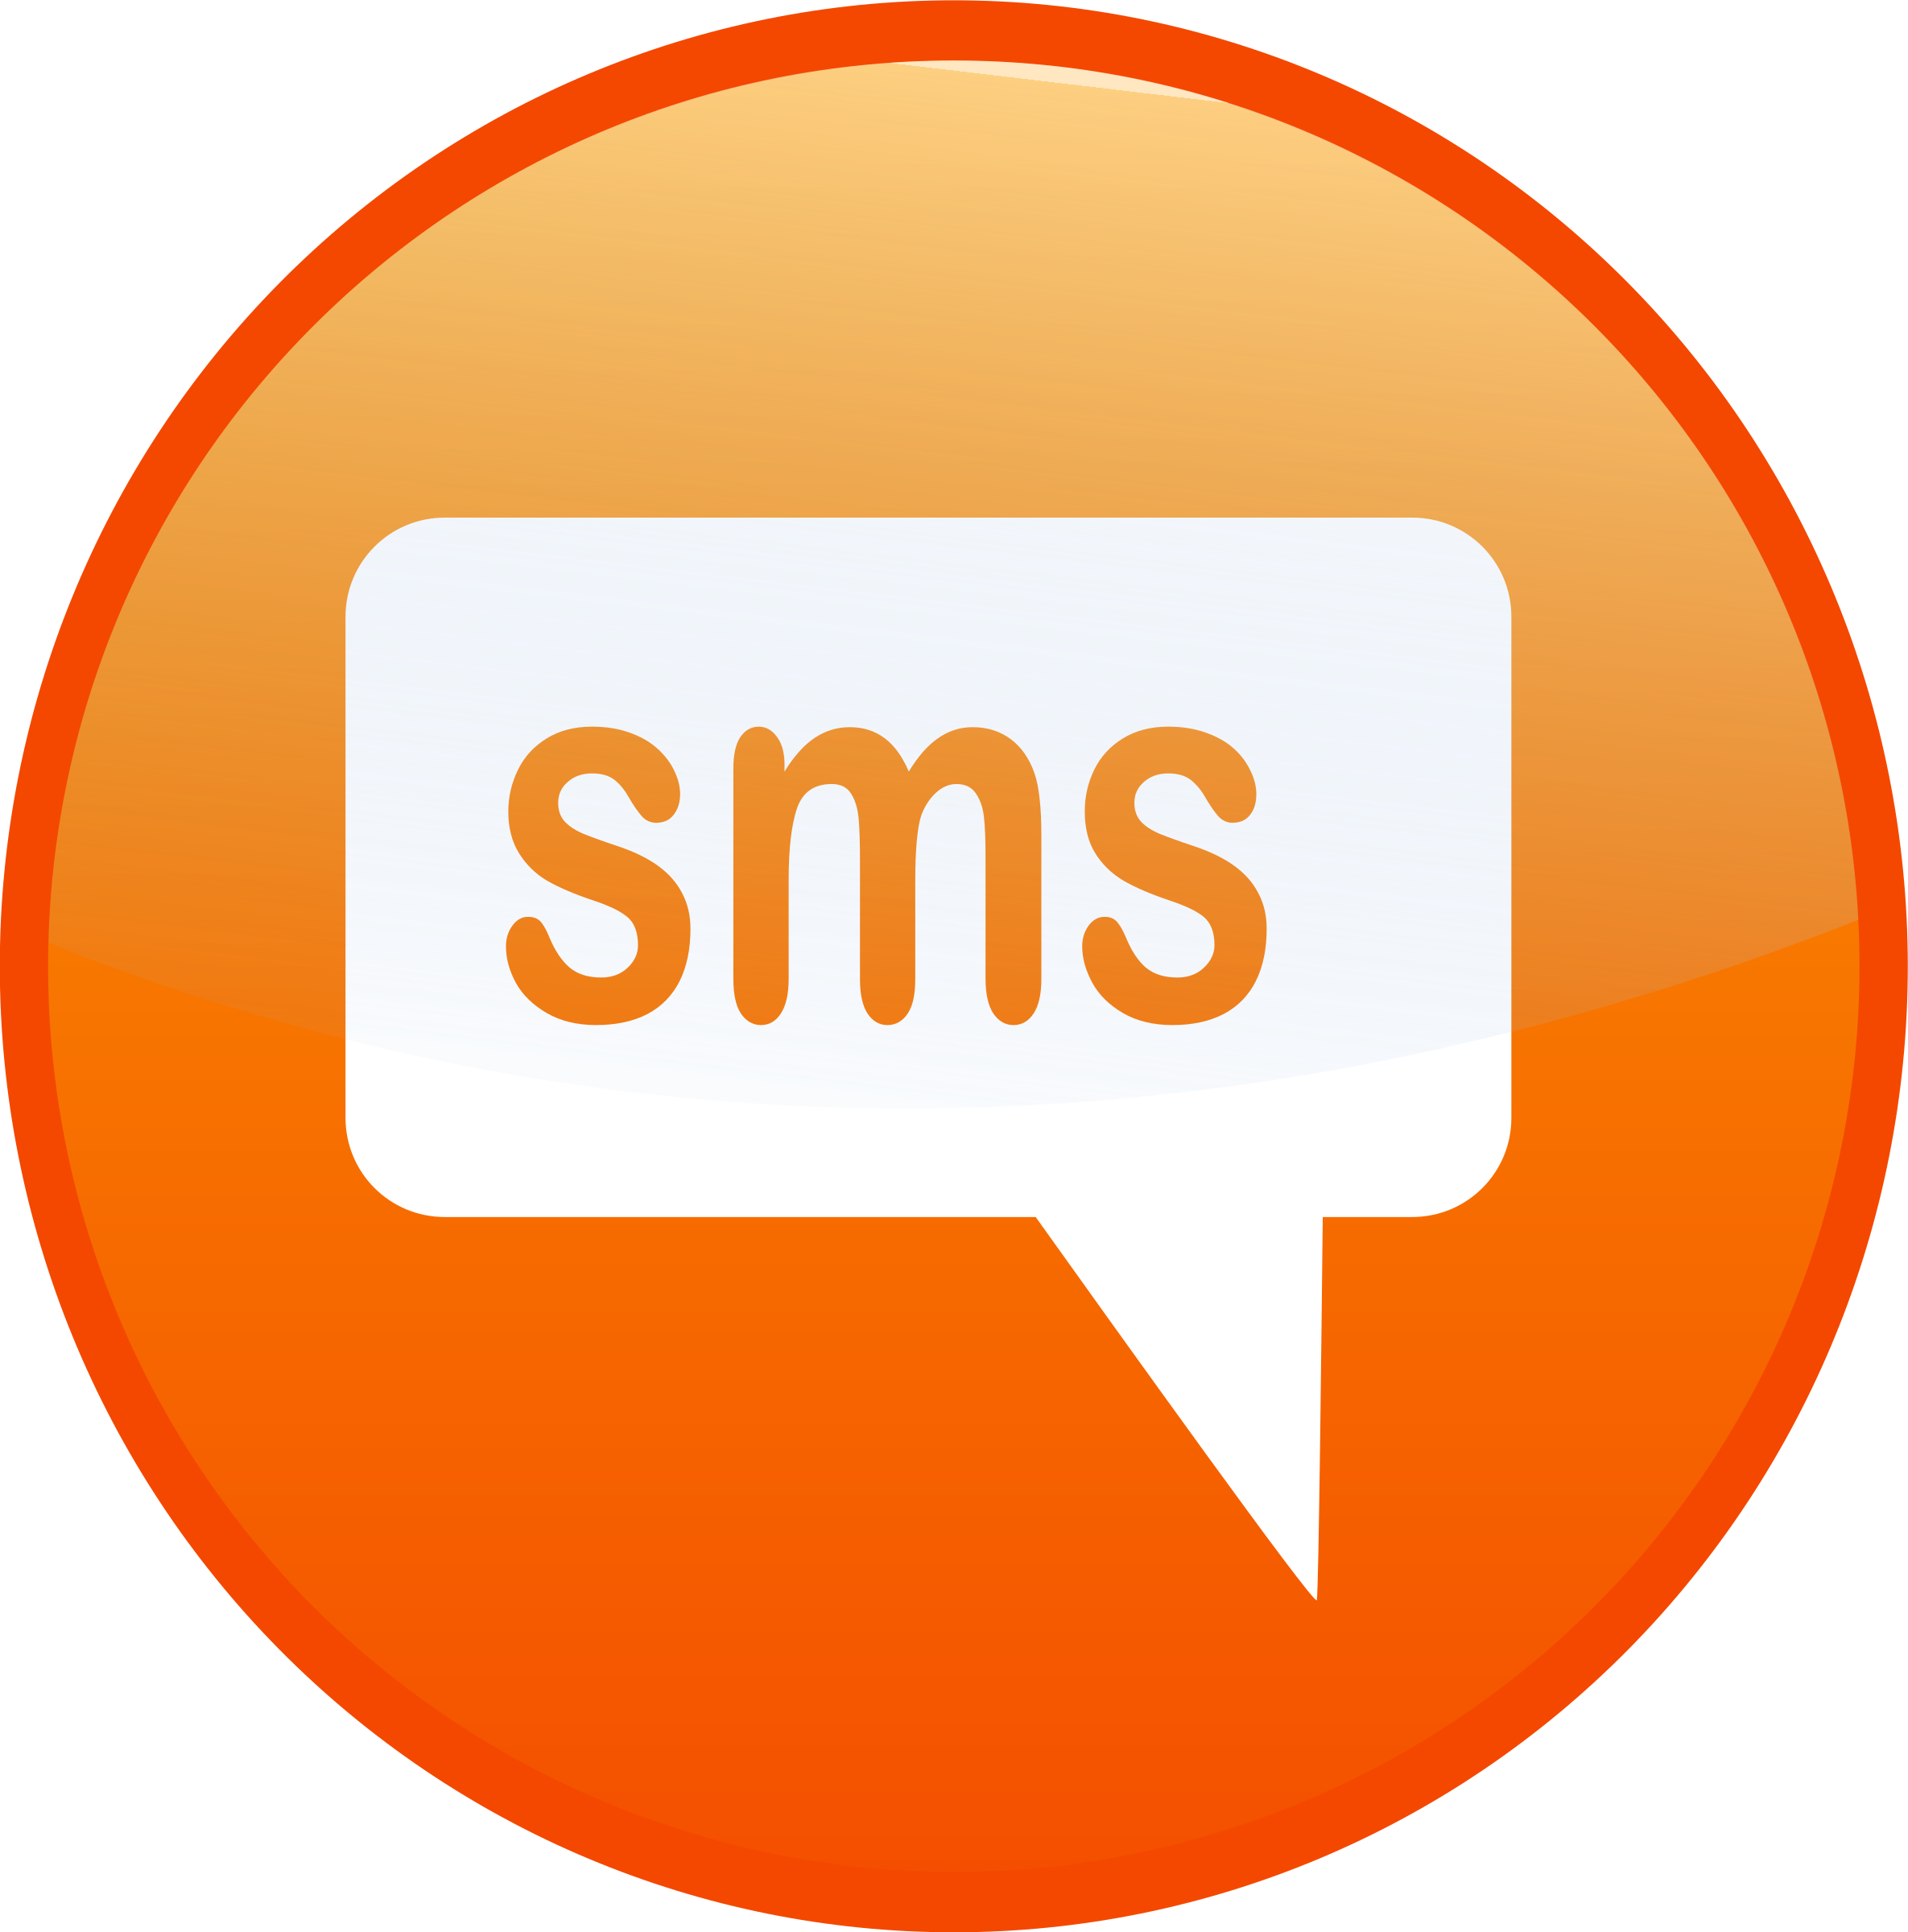 sms-text by shokunin